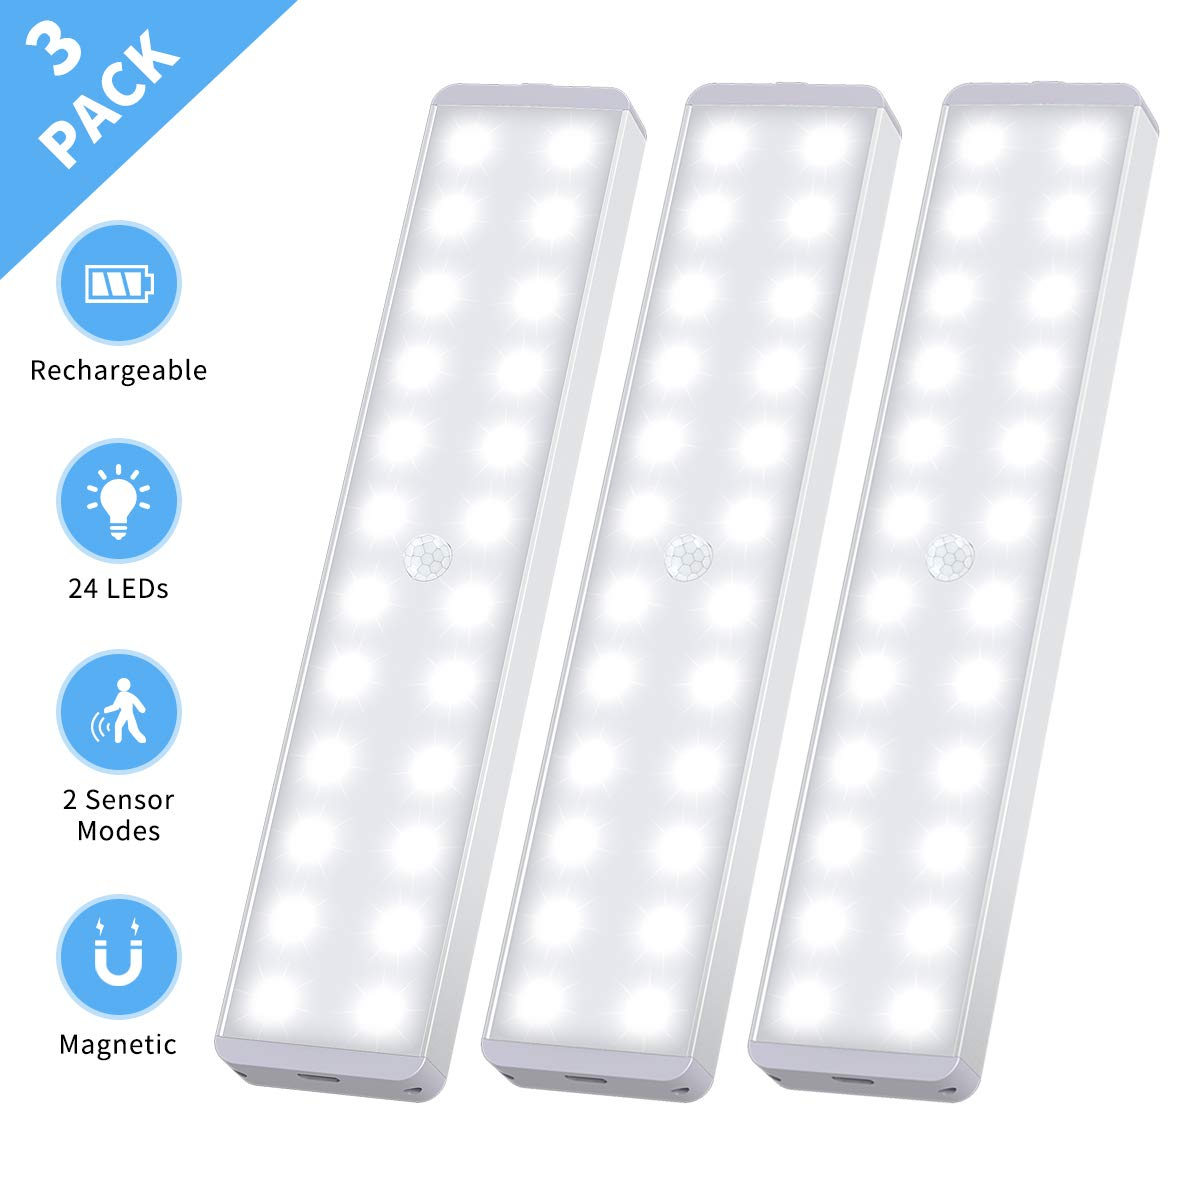 led closet light 24 led motion activated under cabinet lights rechargeable battery operated night lighting wireless motion sensor light stick